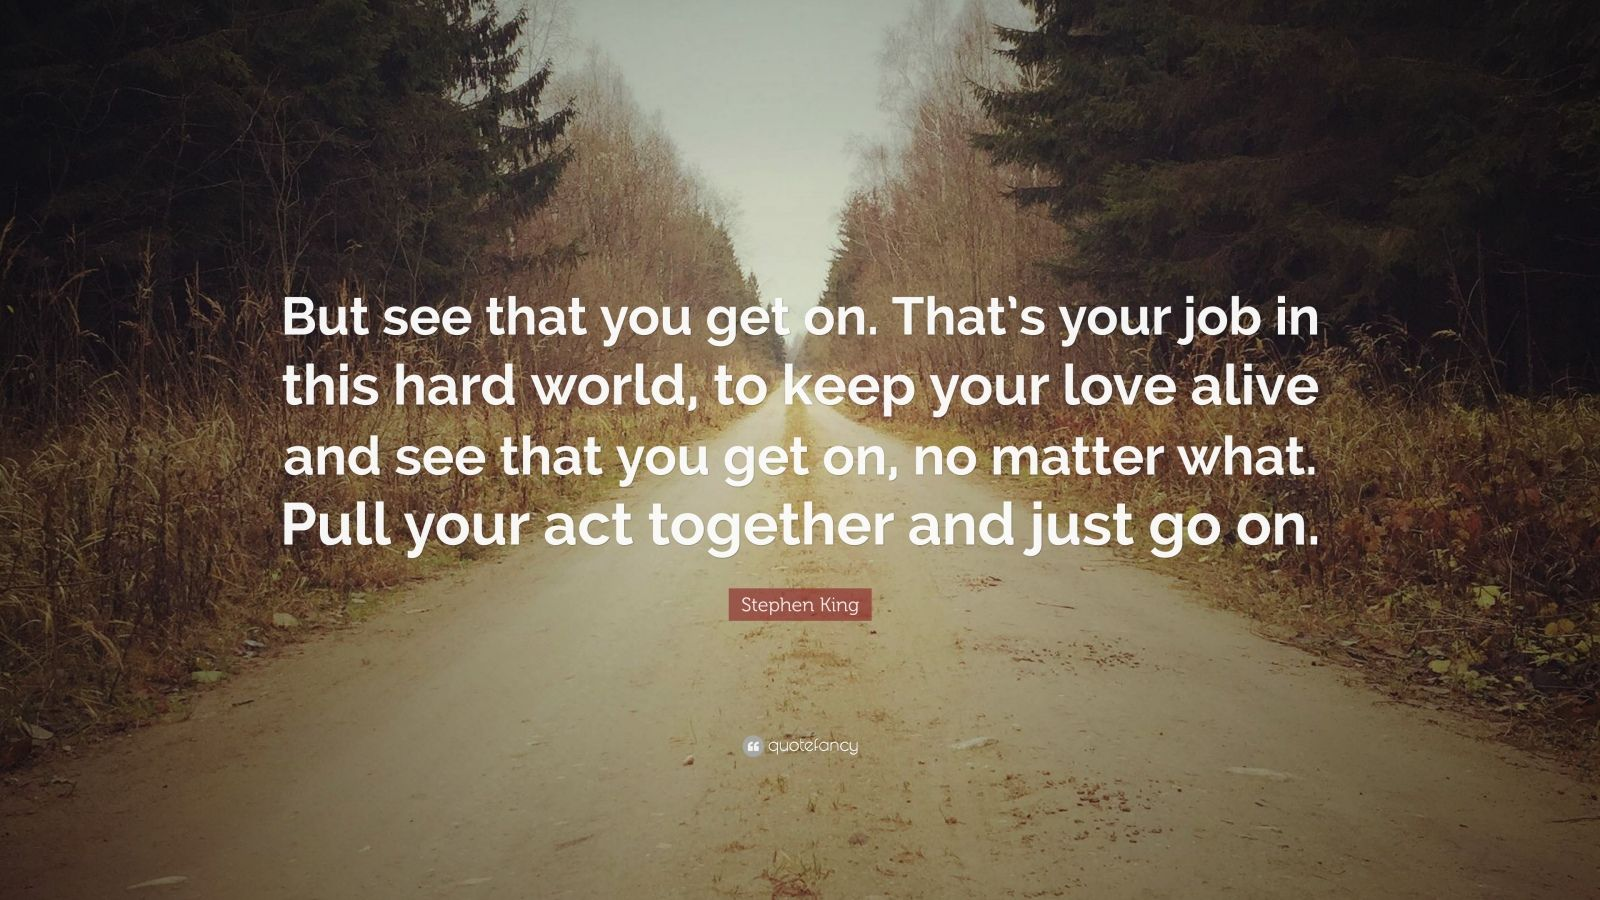 """Stephen King Quote: """"But see that you get on. That's your job in this hard world, to keep your love alive and see that you get on, no matter what. Pull your act together and just go on."""""""